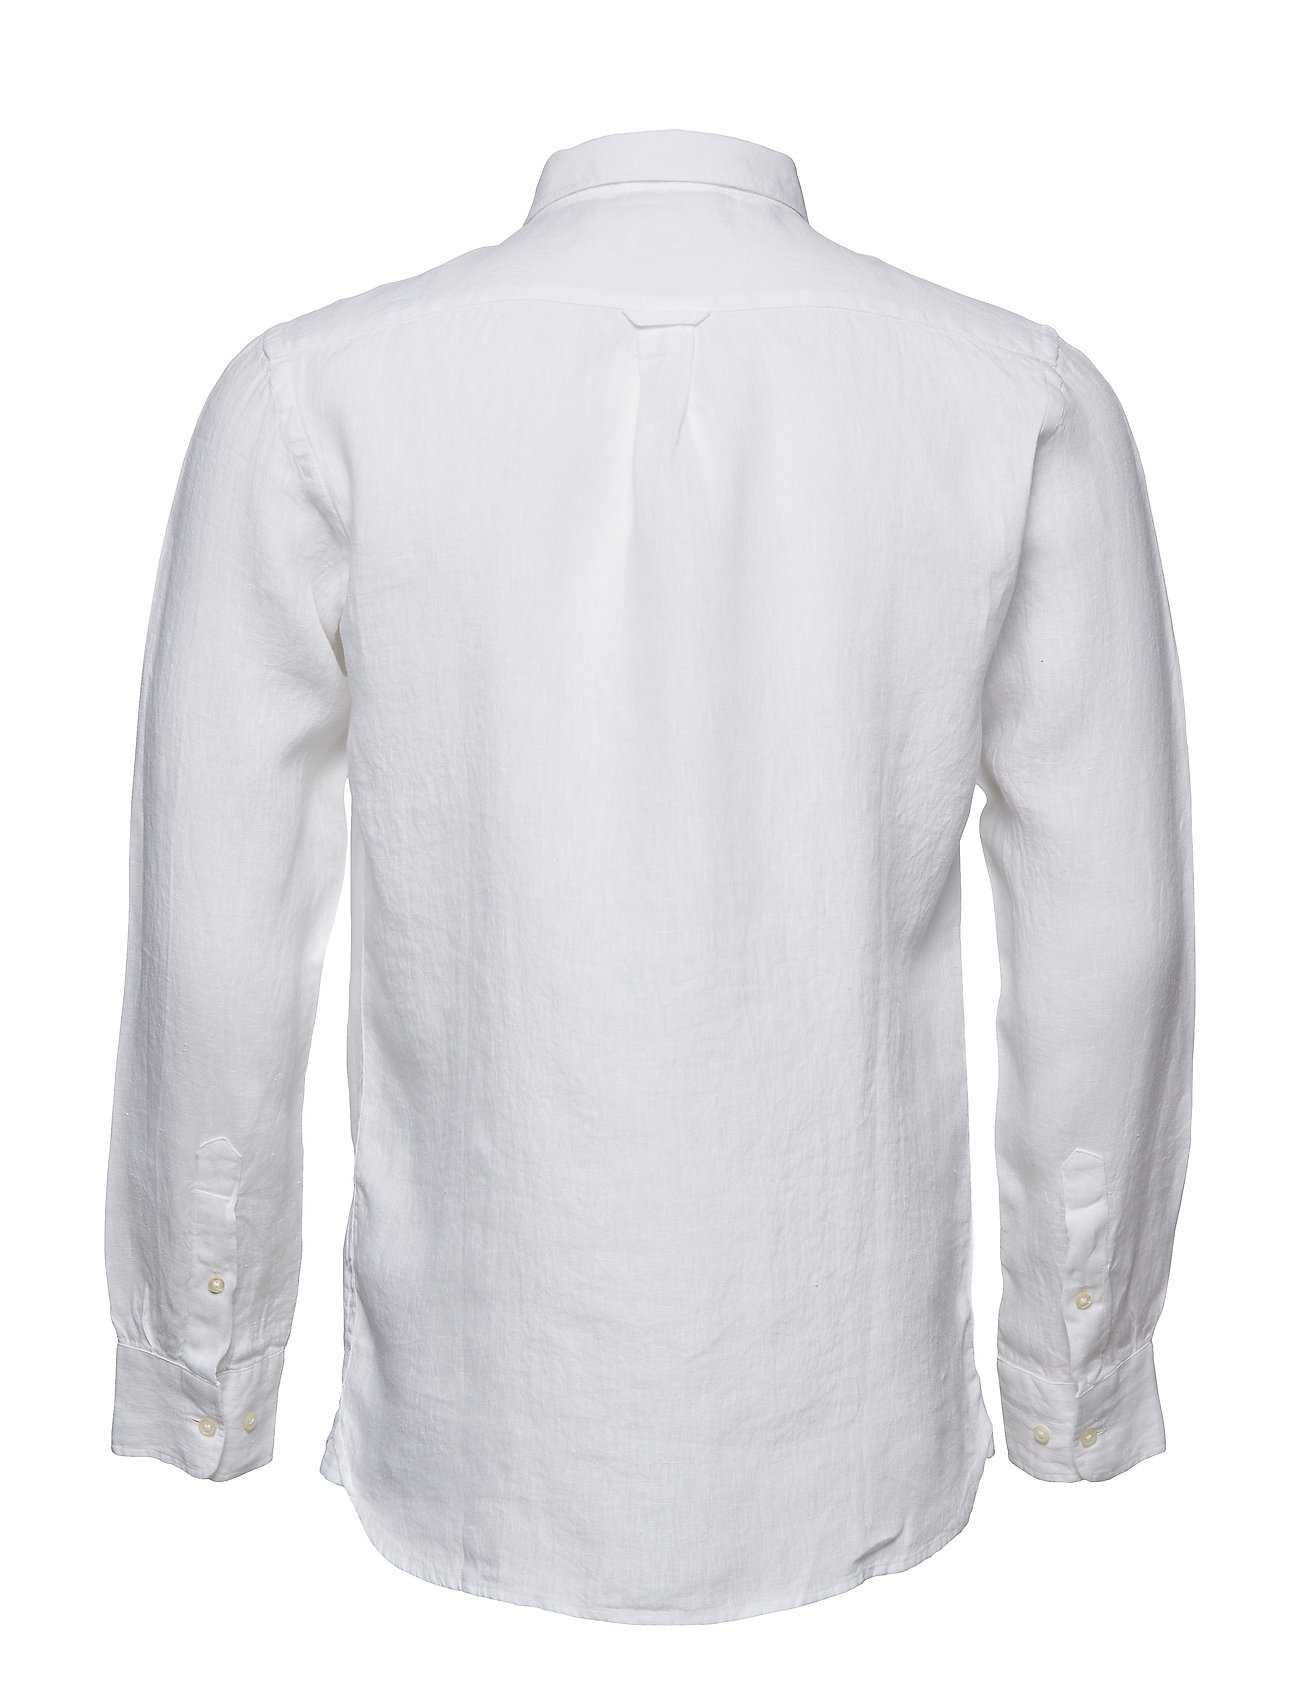 Larch Ls WhiteKnowledge Cotton Apparel Shirtbright rQeWdCxBo